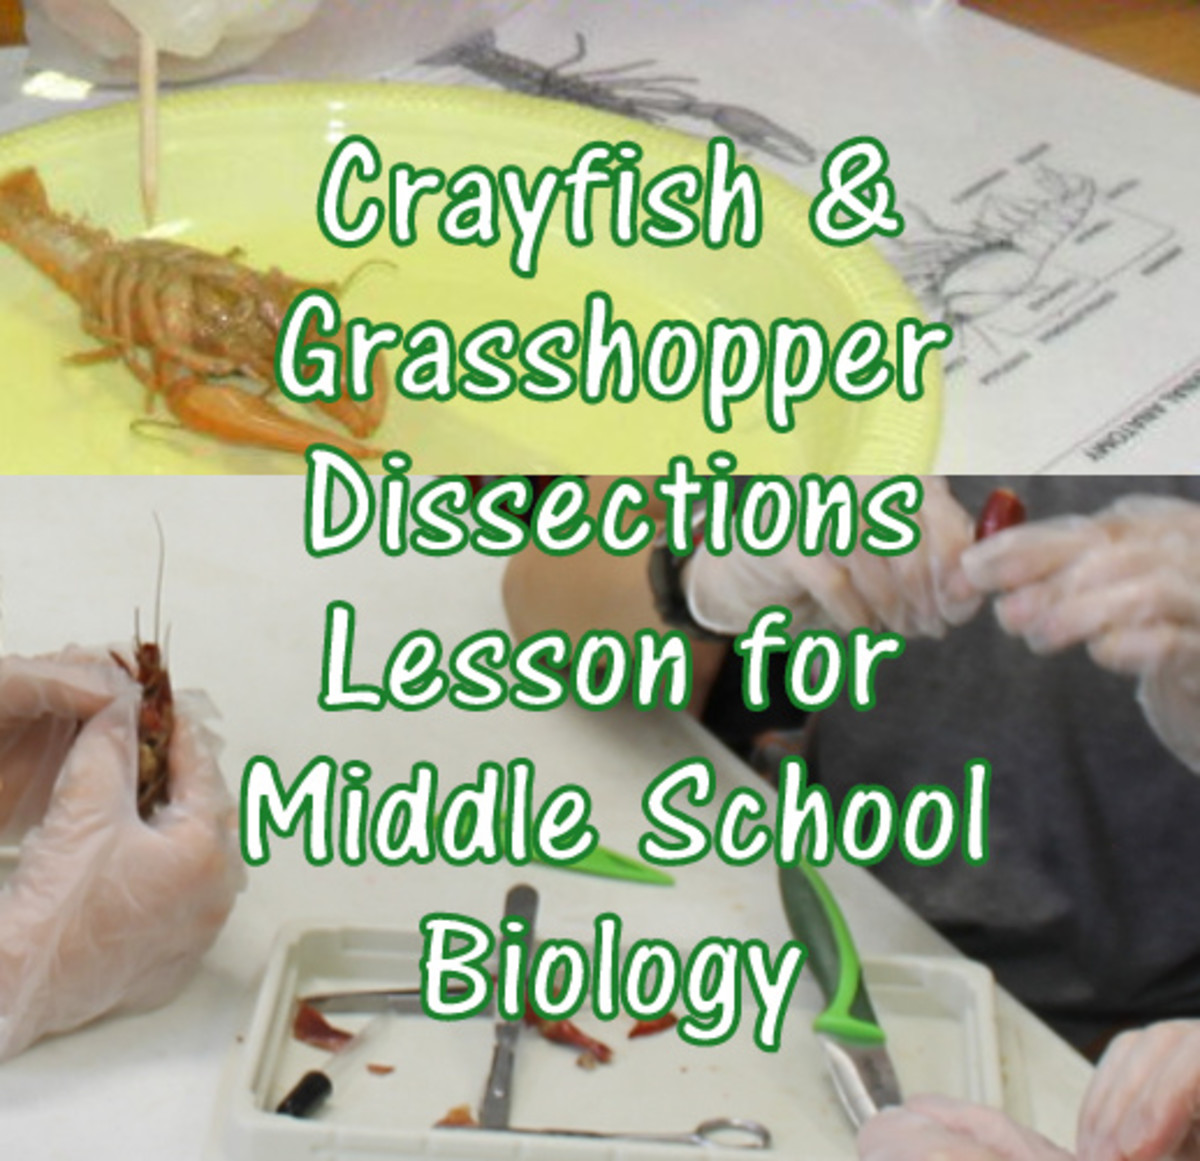 Arthropod Anatomy & Dissection Lesson for Middle School: Crayfish and Grasshoppers